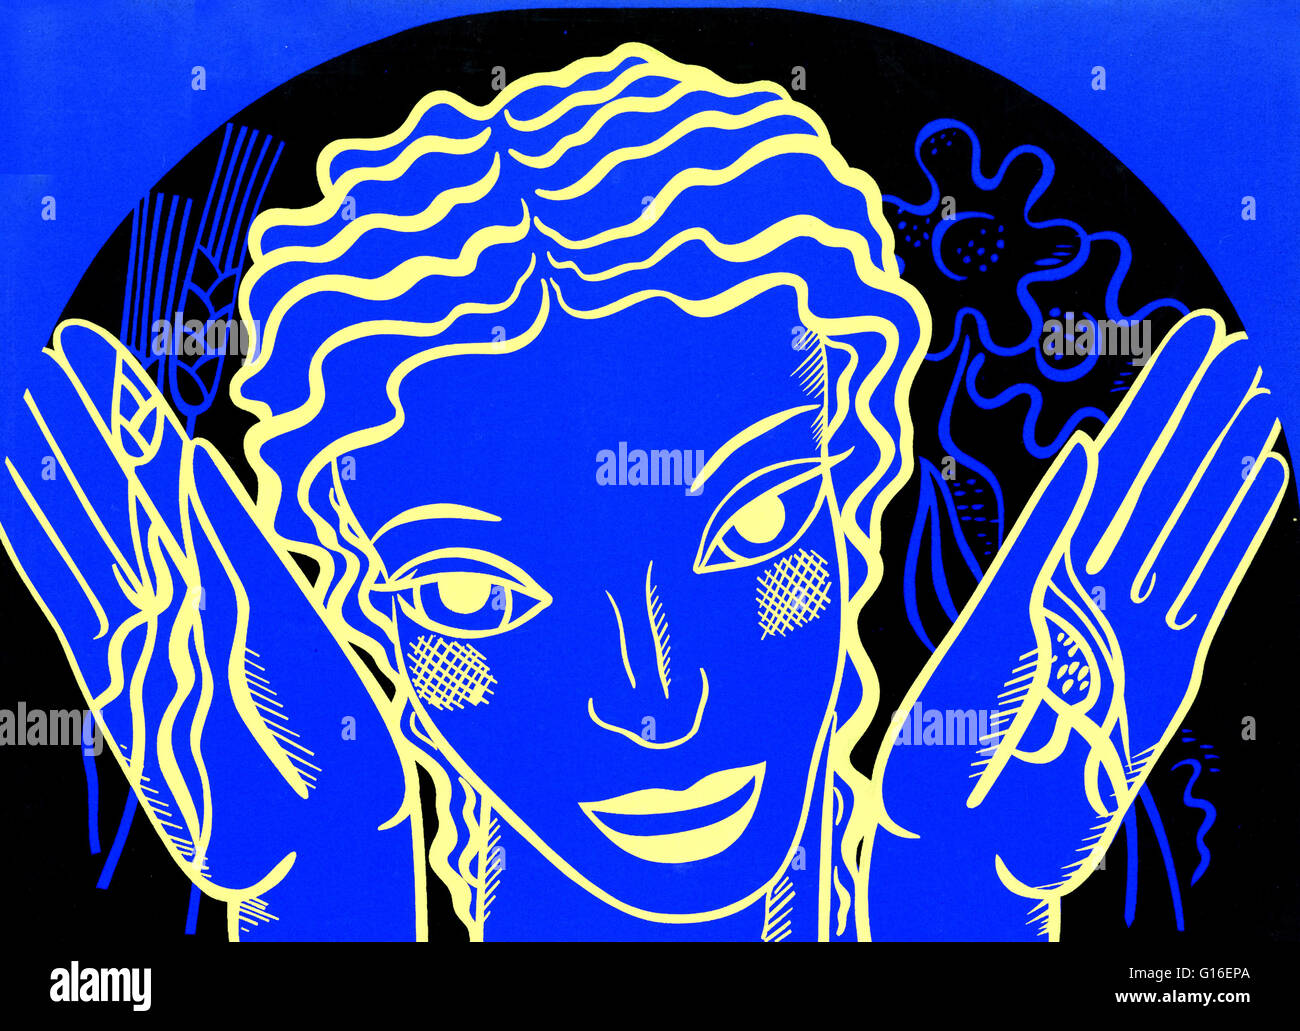 Poster design keywords - Stock Photo Wpa Poster Design On Blue Background Showing The Head And Hands Of A Woman Holding Flowers And Wheat The Federal Art Project Fap Was The